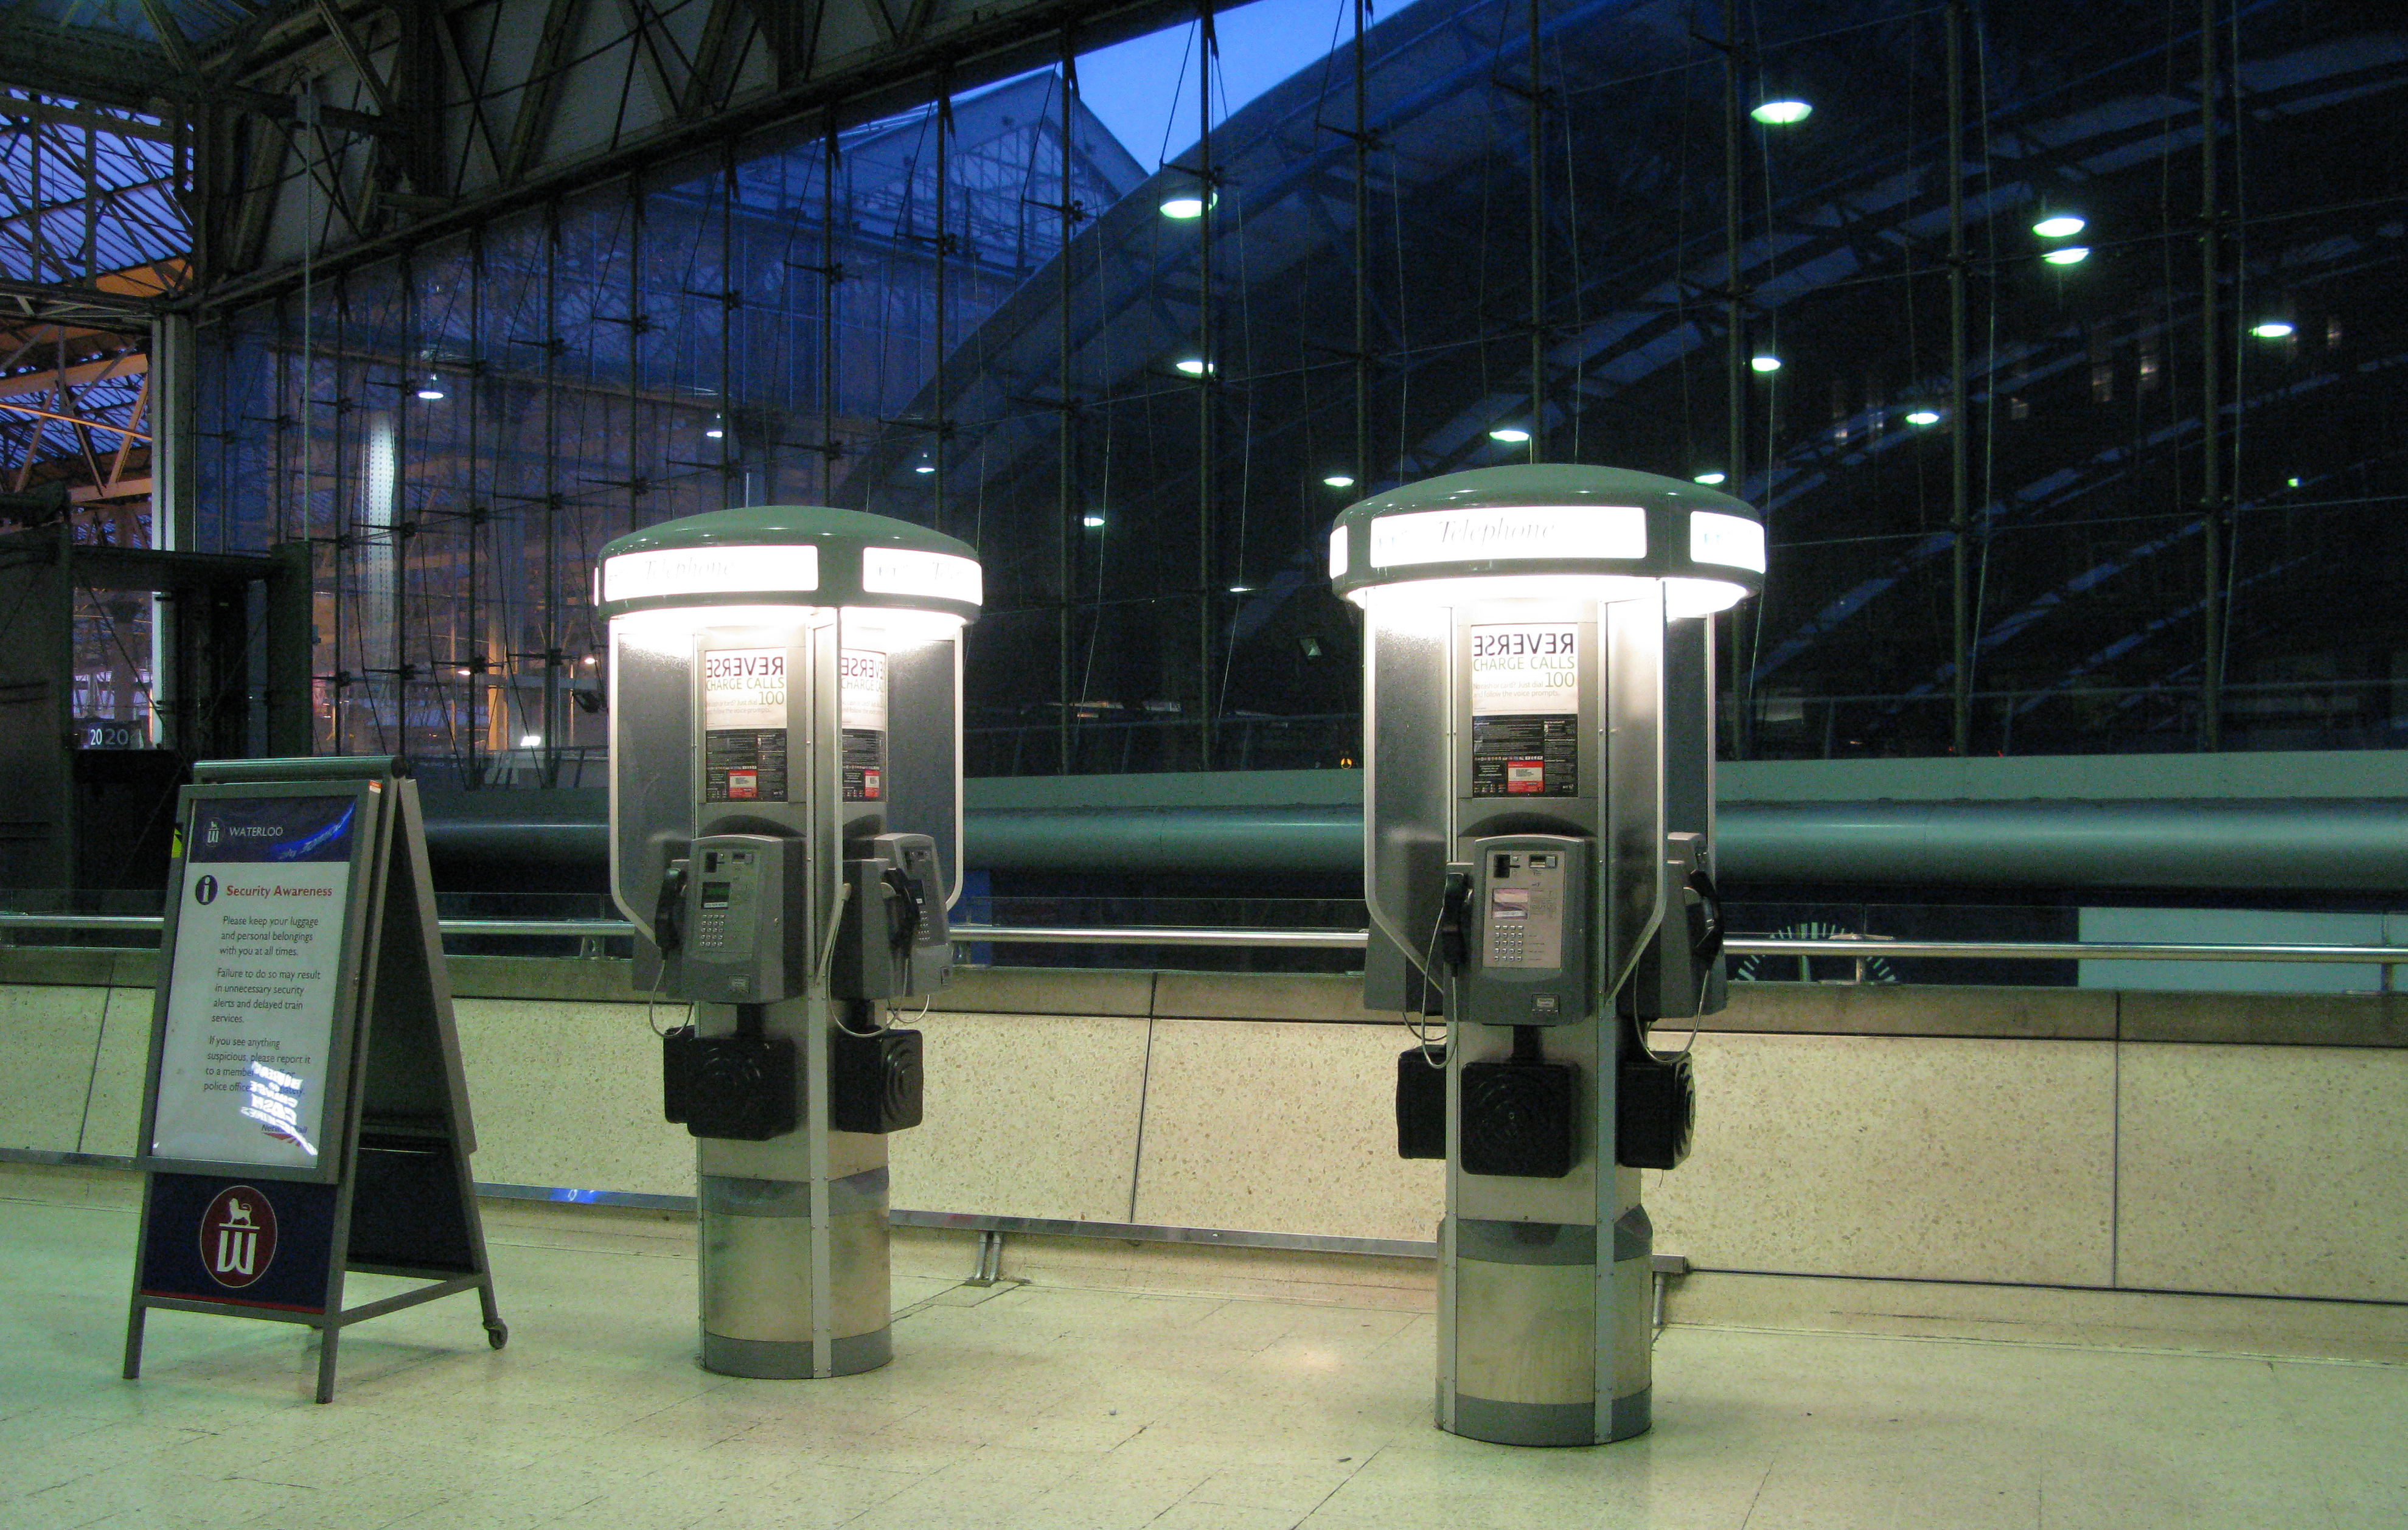 Four-sided pedestal BT phone booths at Waterllo railway station